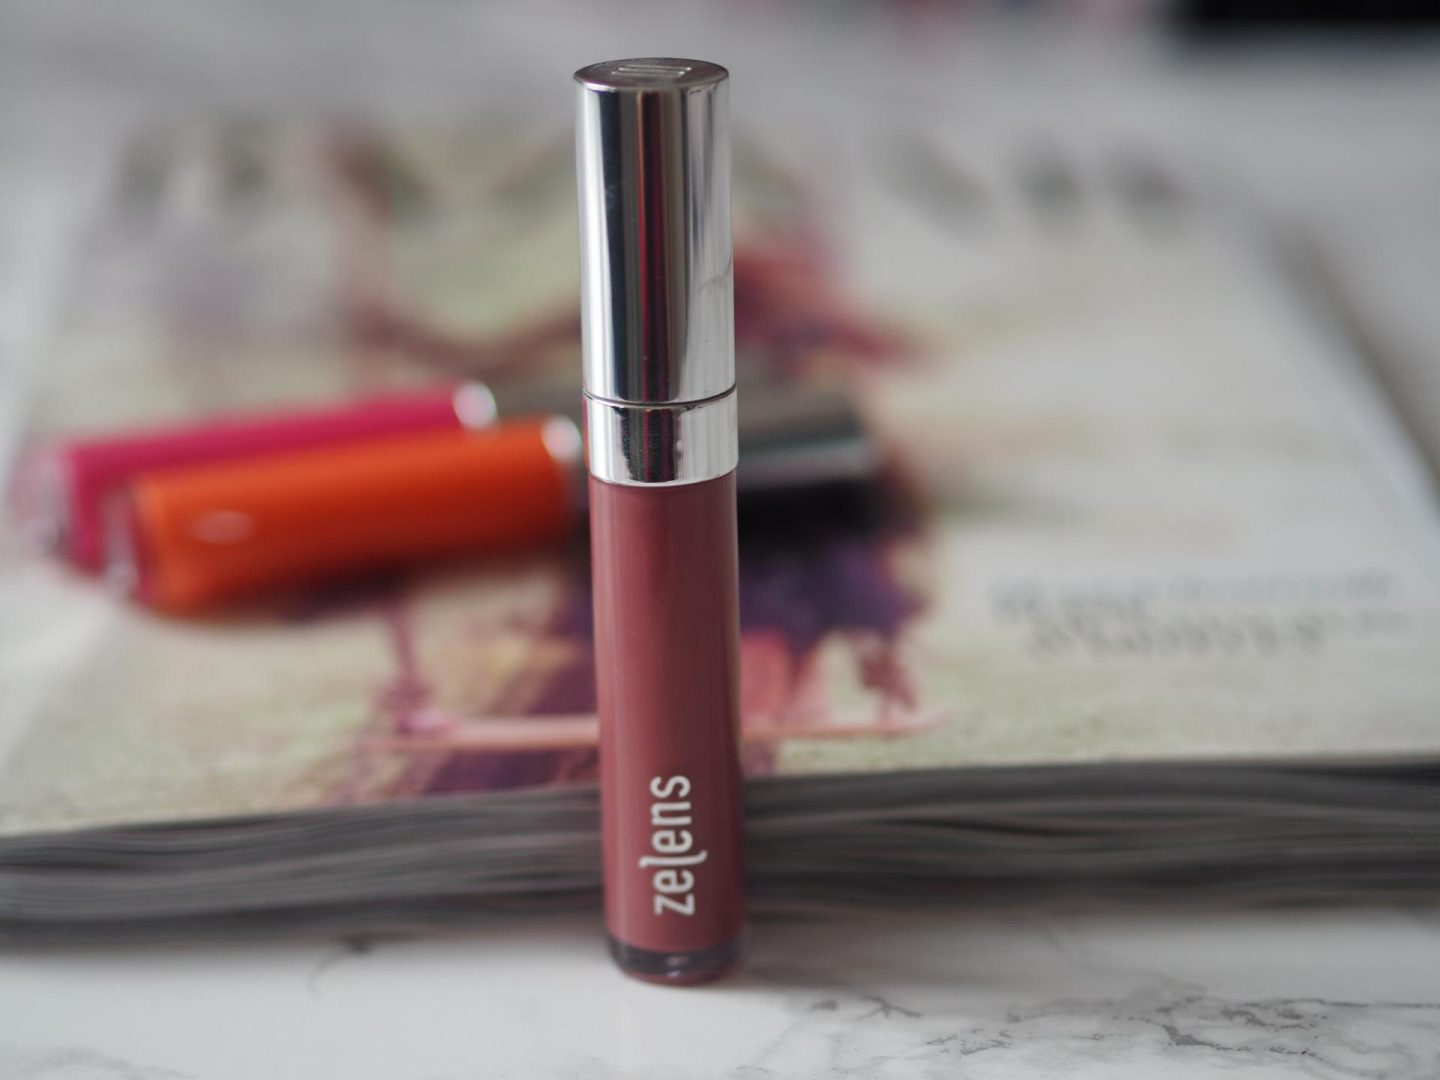 Zelens Lip Glaze in Rose